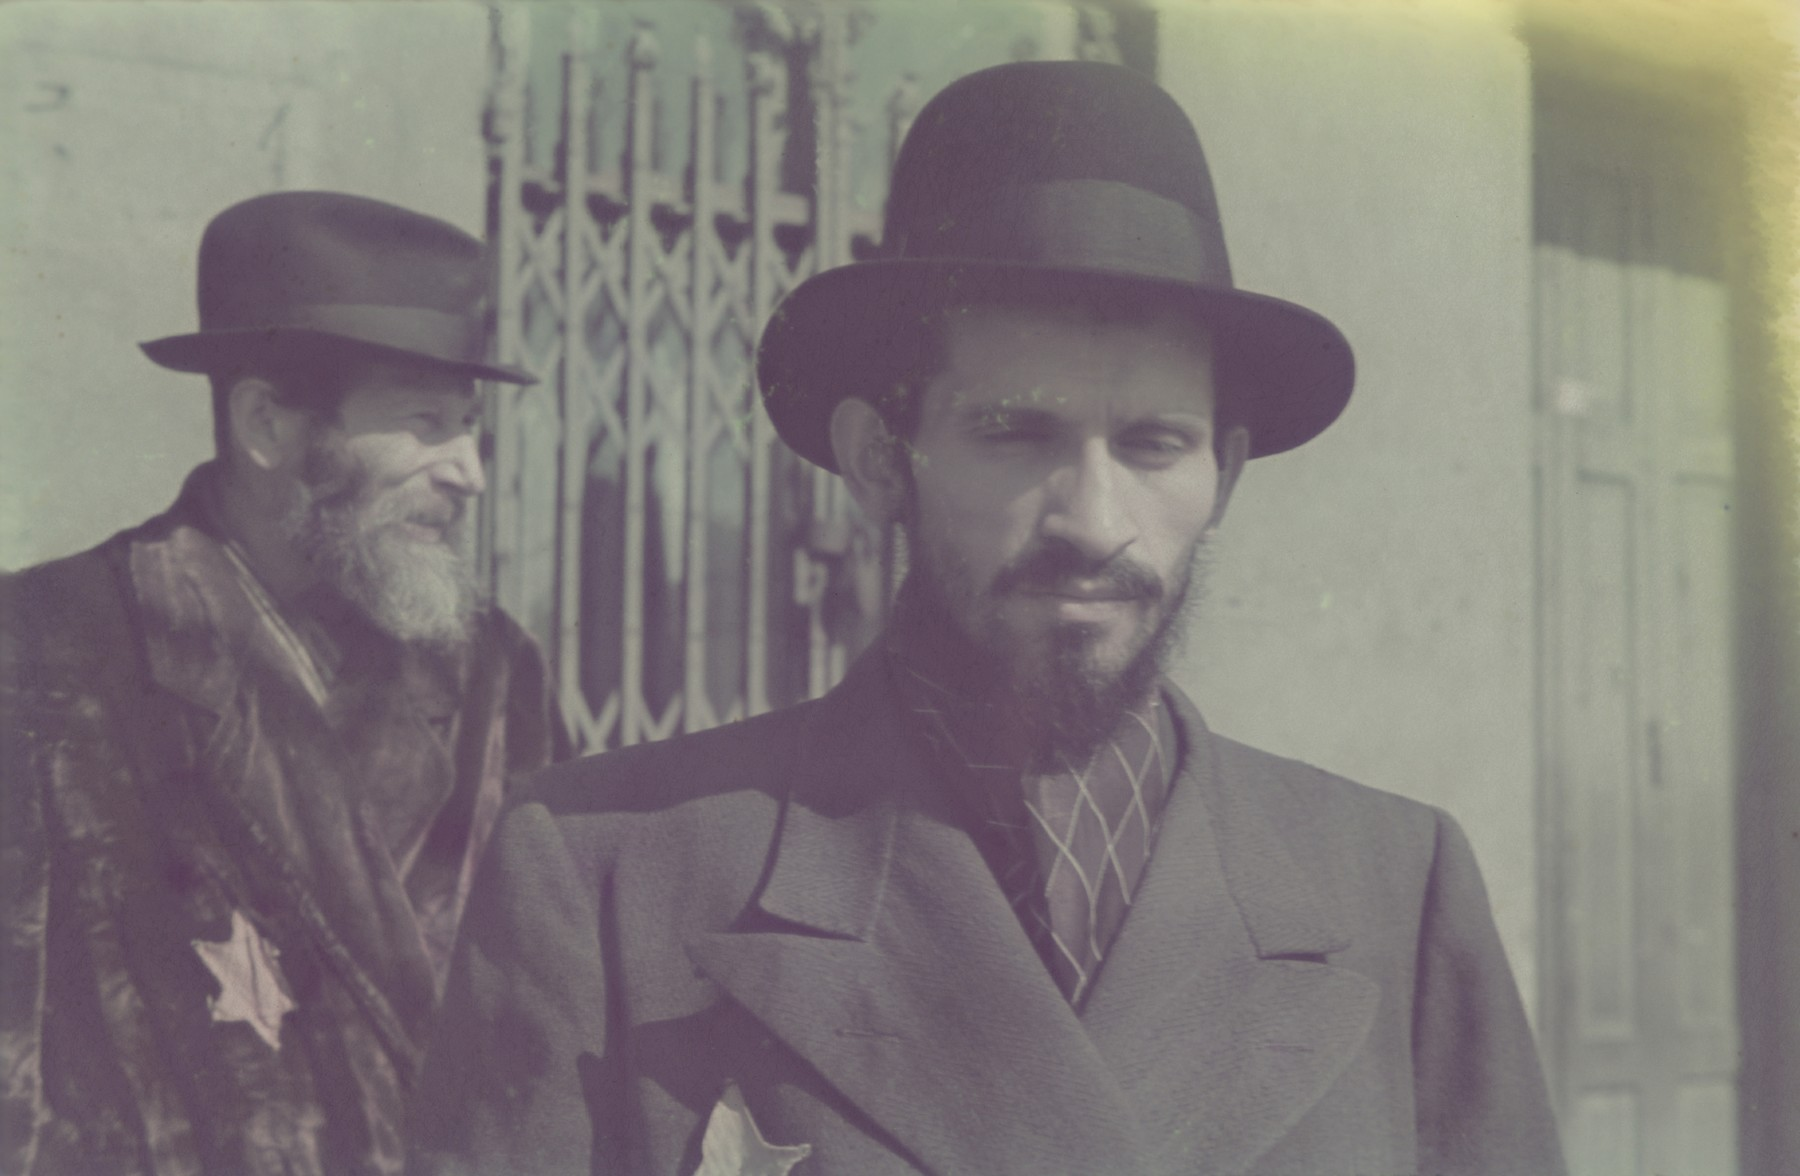 Close-up portrait of two bearded Jewish men in the Lodz ghetto.